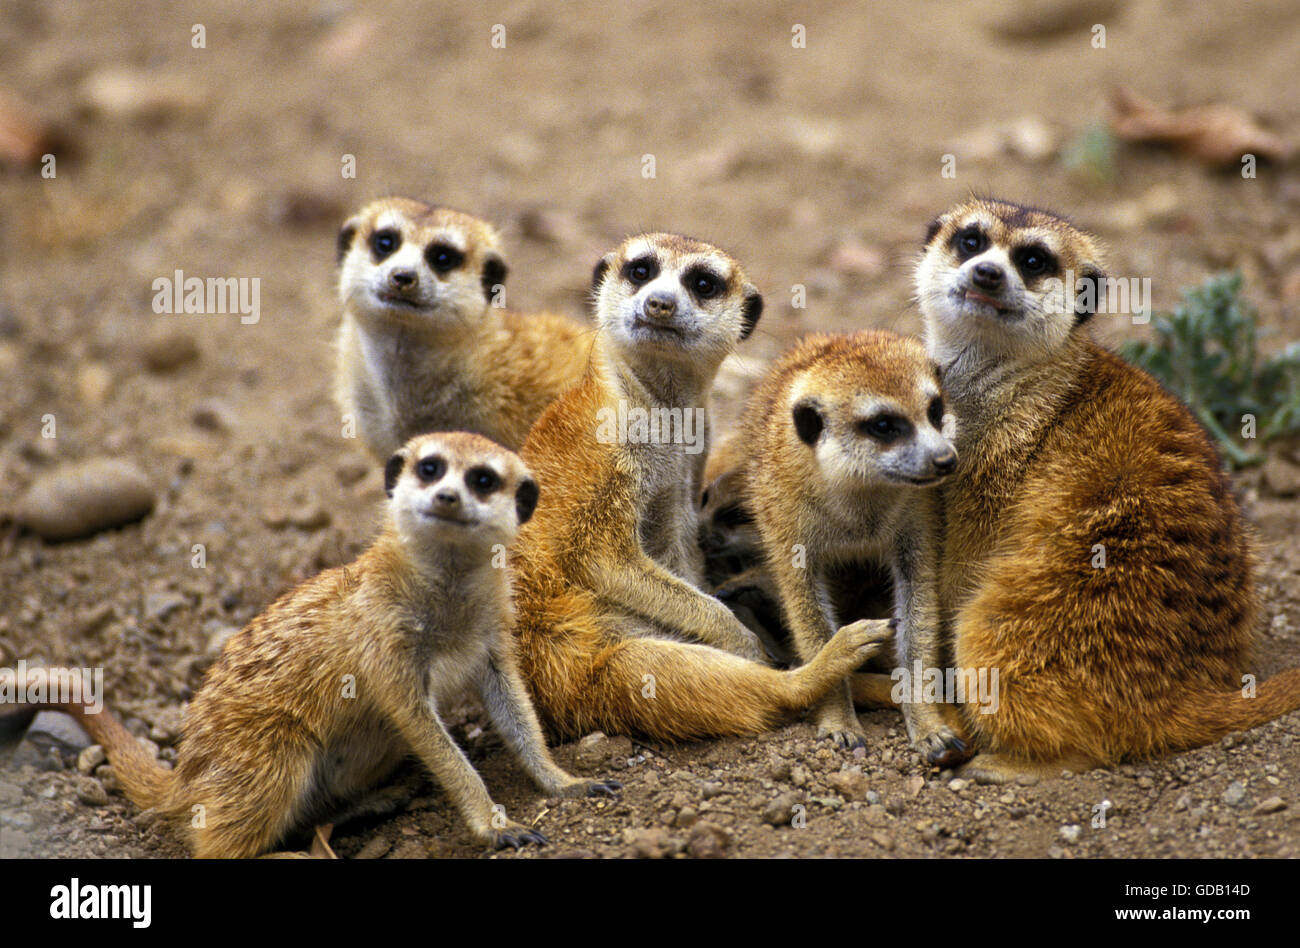 Meerkat, suricata suricatta, Group on Ground - Stock Image